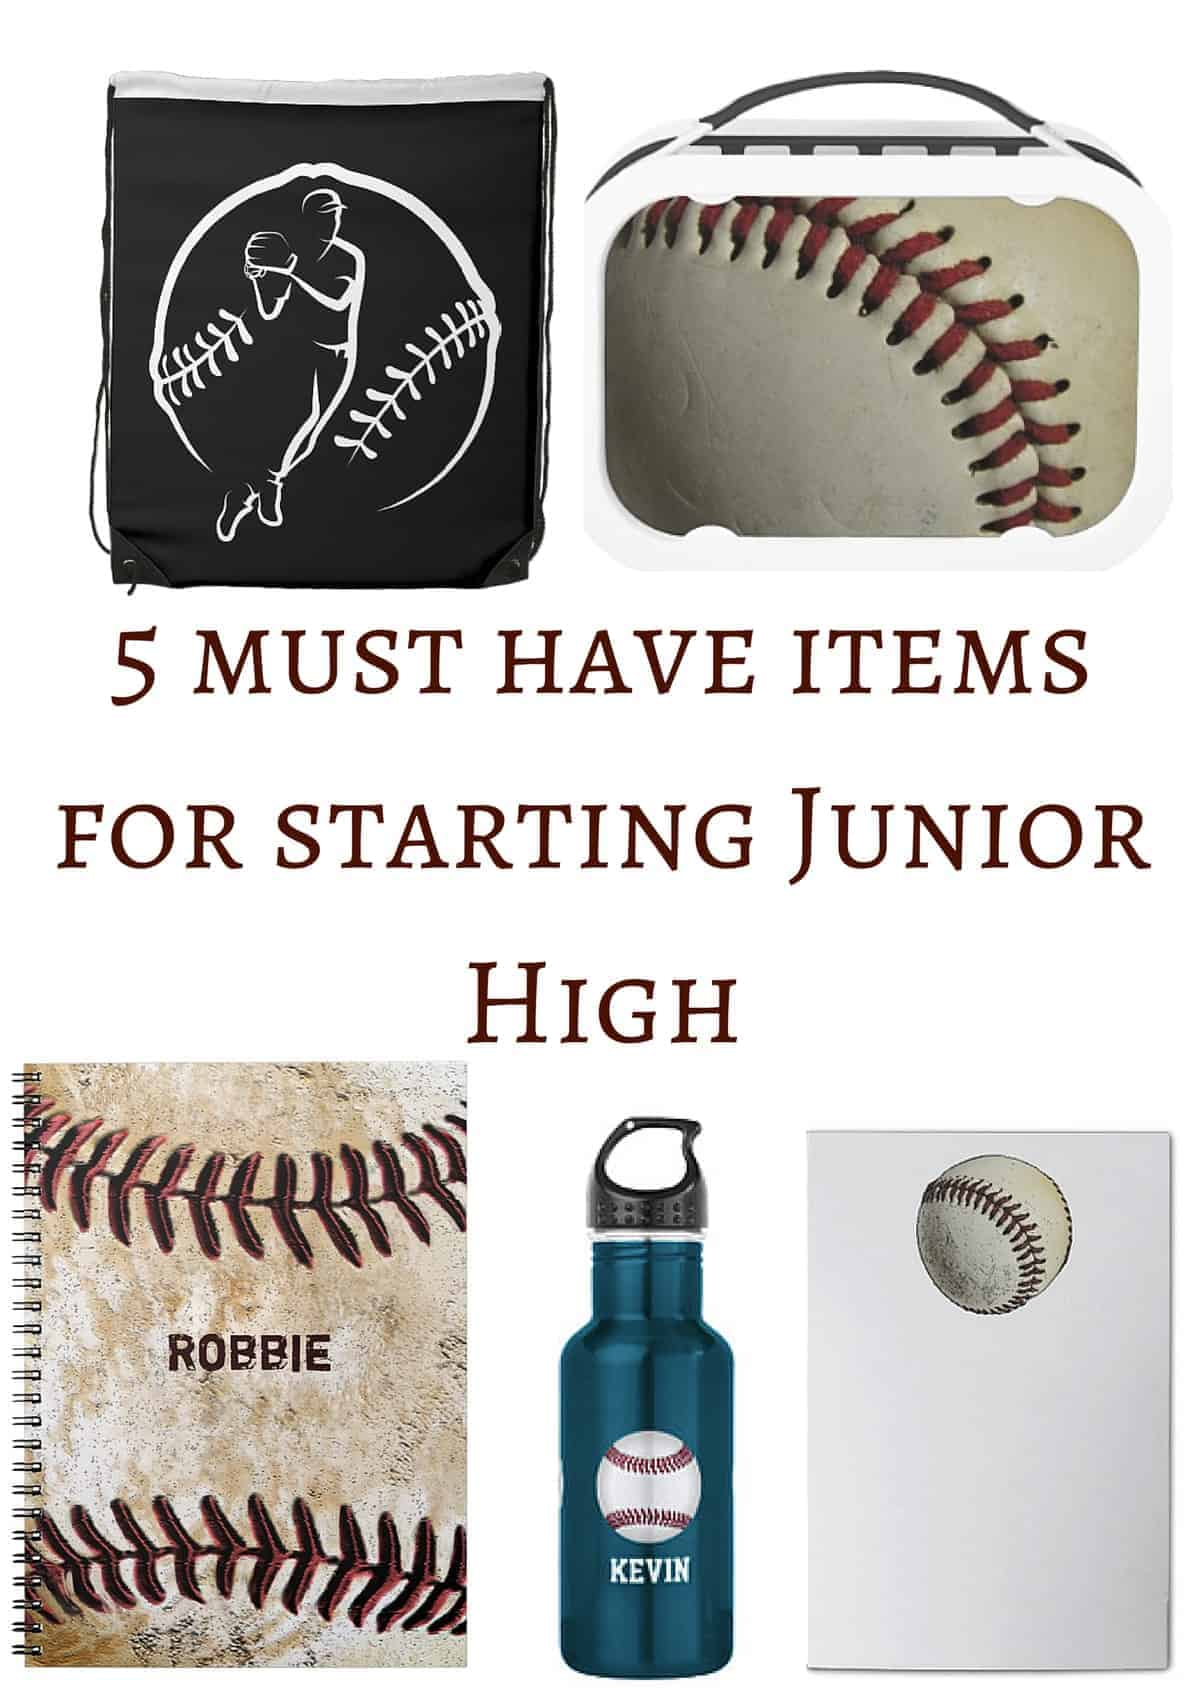 5 Must Have Items for Starting Junior High